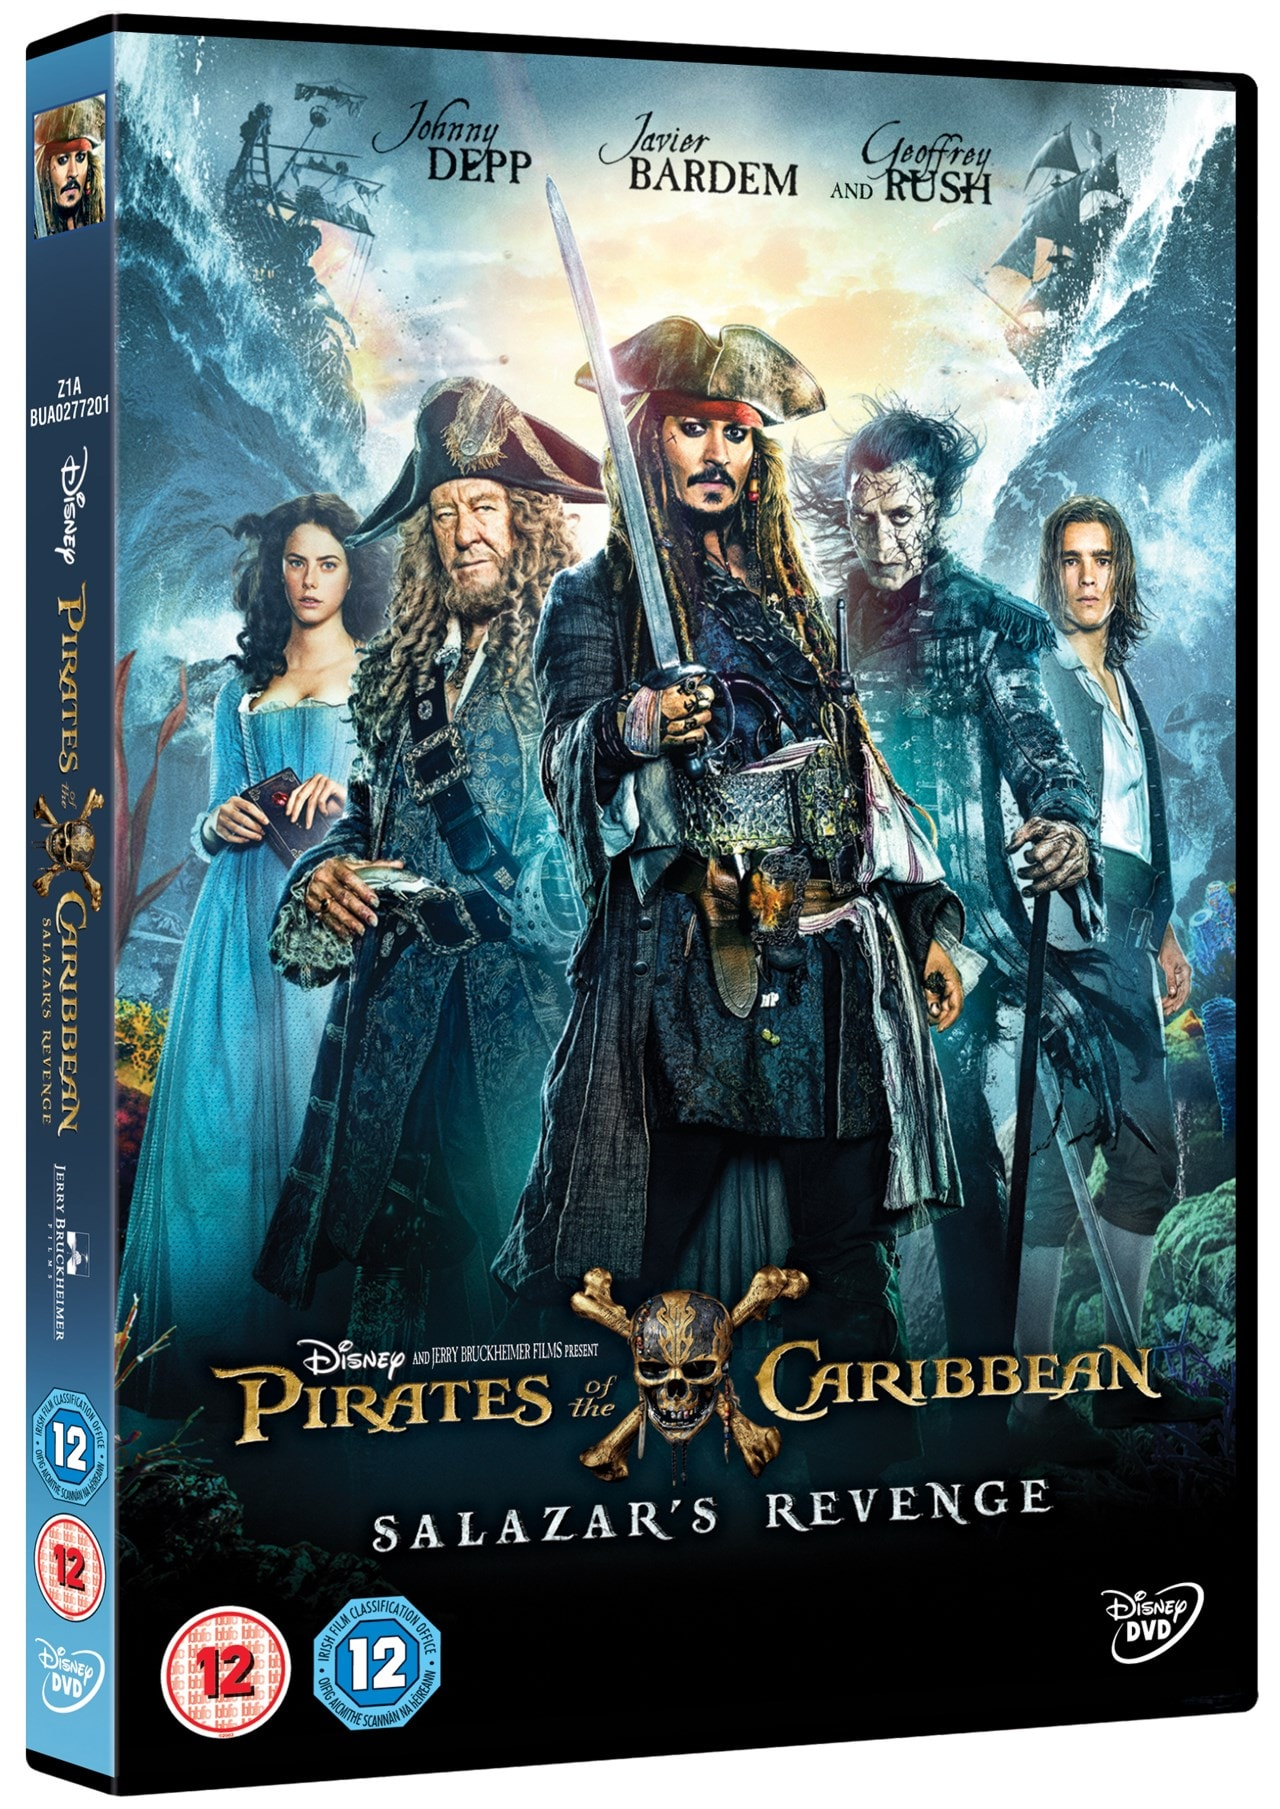 Pirates of the Caribbean: Salazar's Revenge - 4